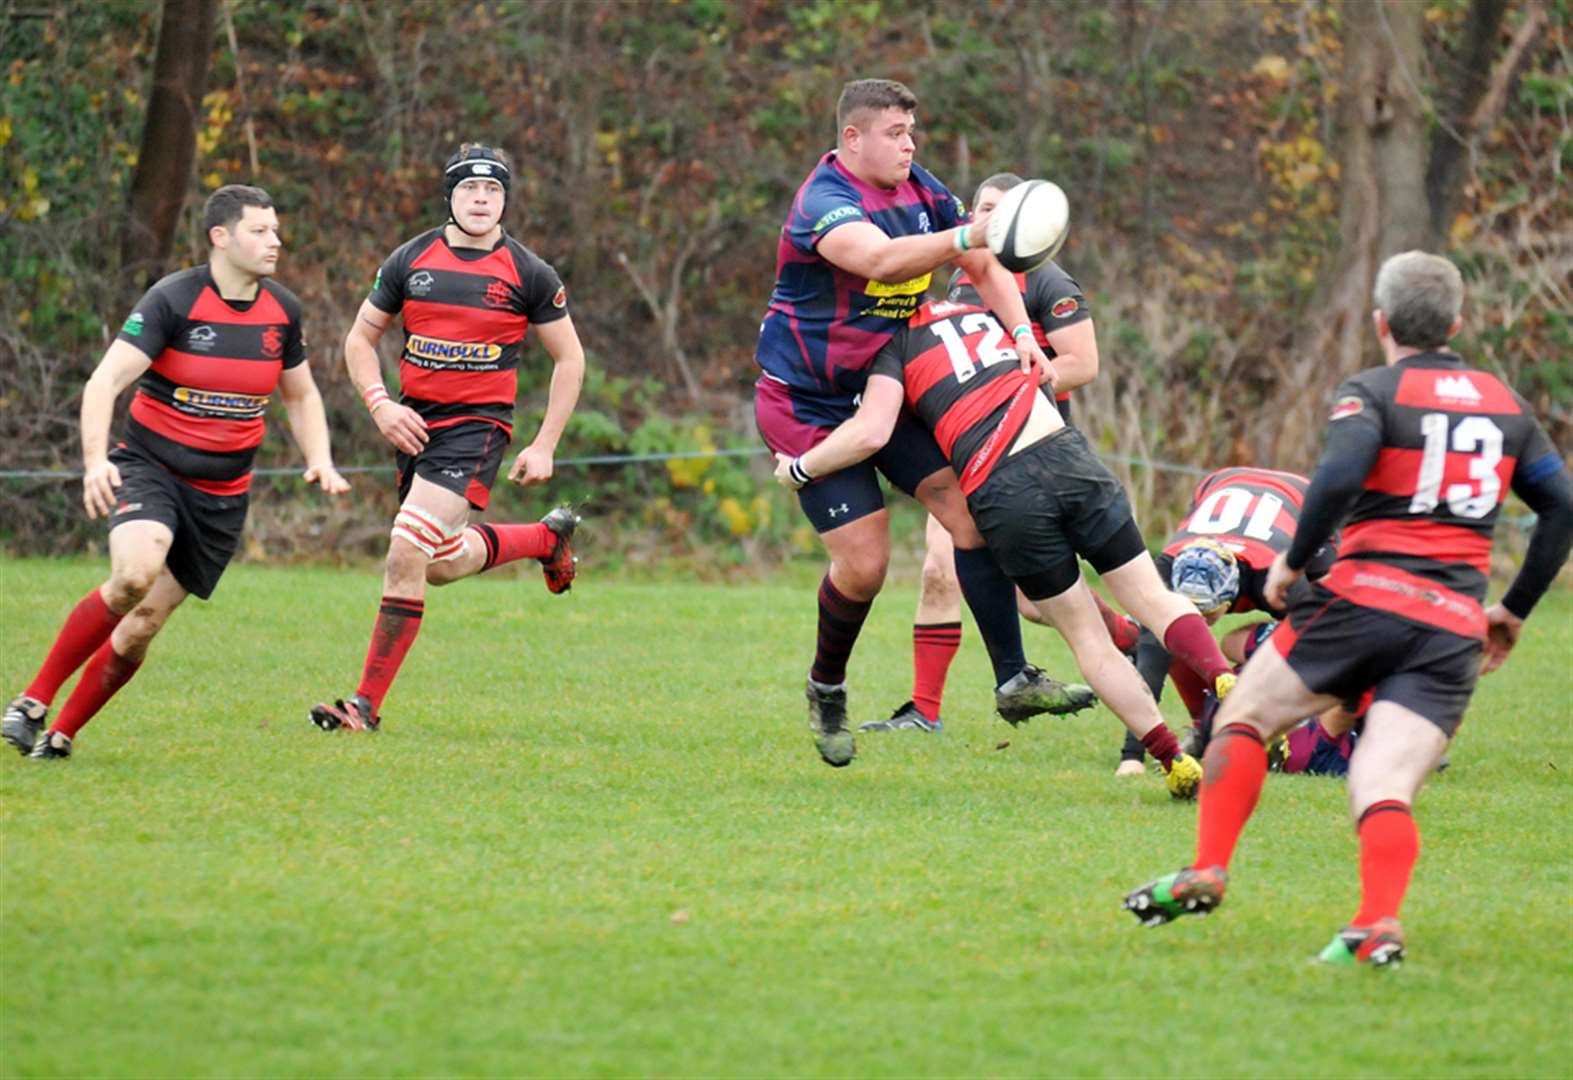 RUGBY: Spalding keep up fine home form to defeat local rivals